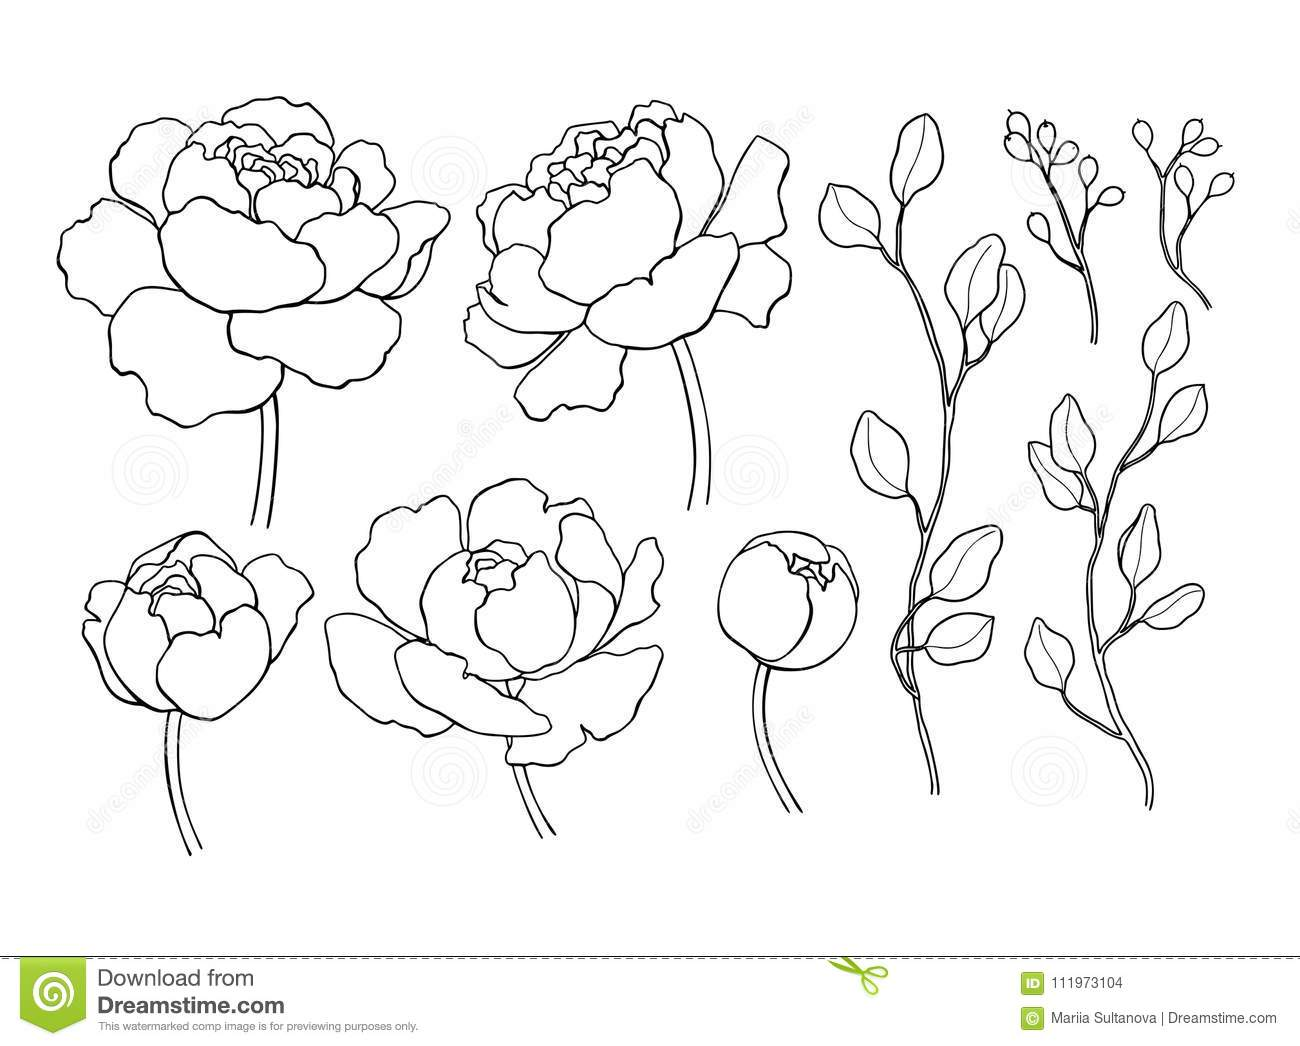 Peony flower and leaves line drawing vector hand drawn outline